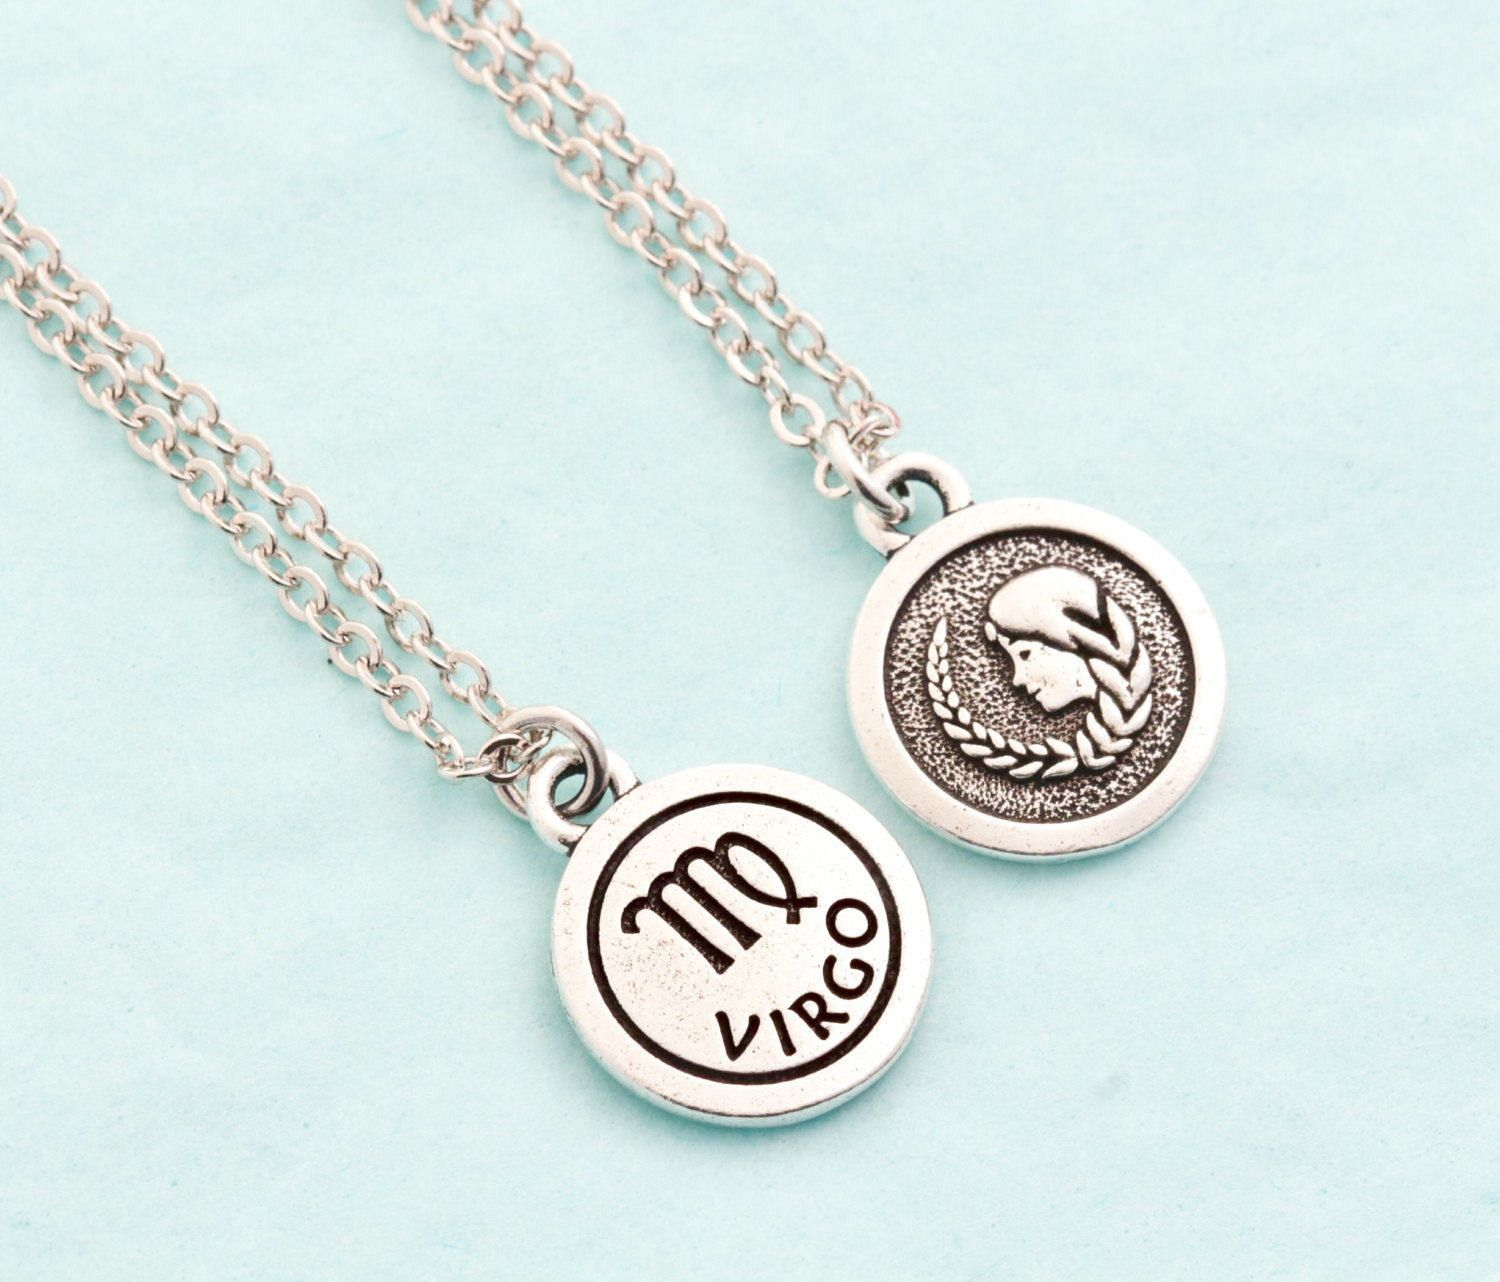 Silver virgo necklace products